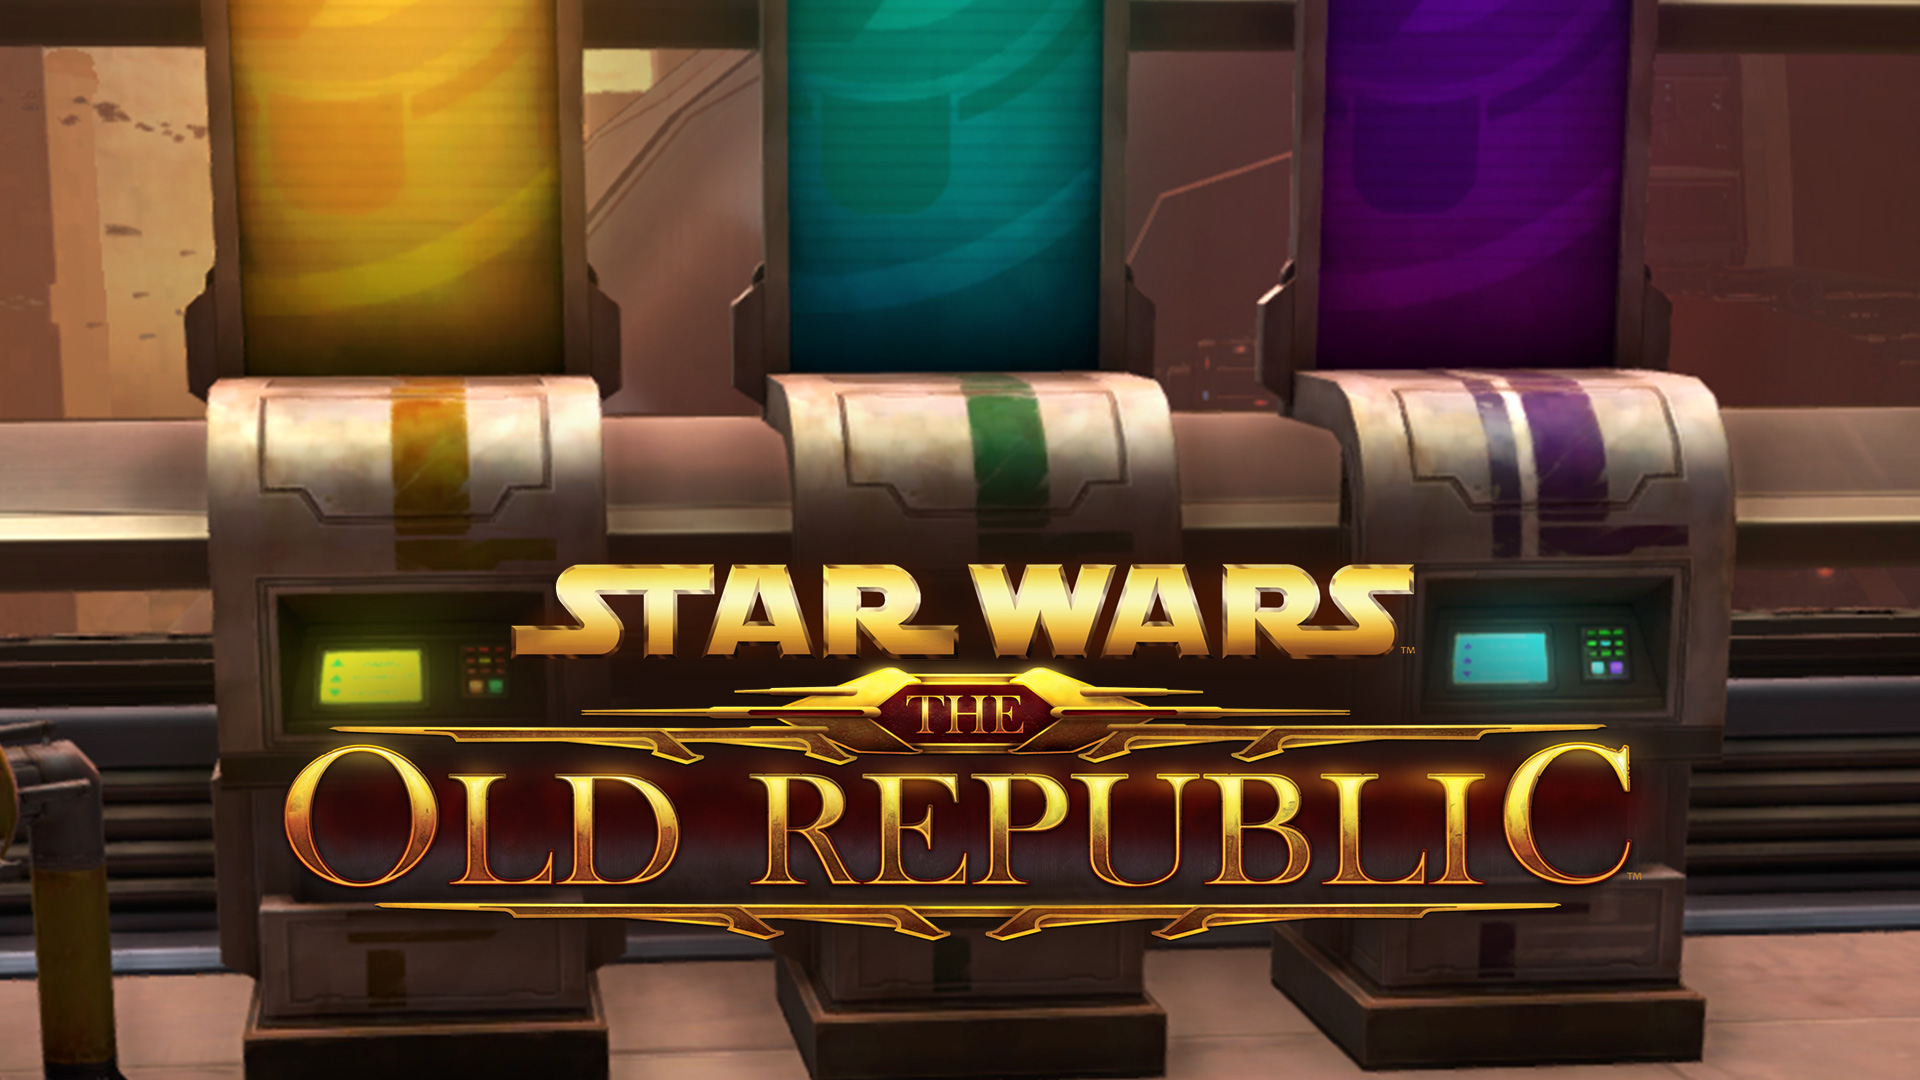 Enjoy star wars game with swtor credits